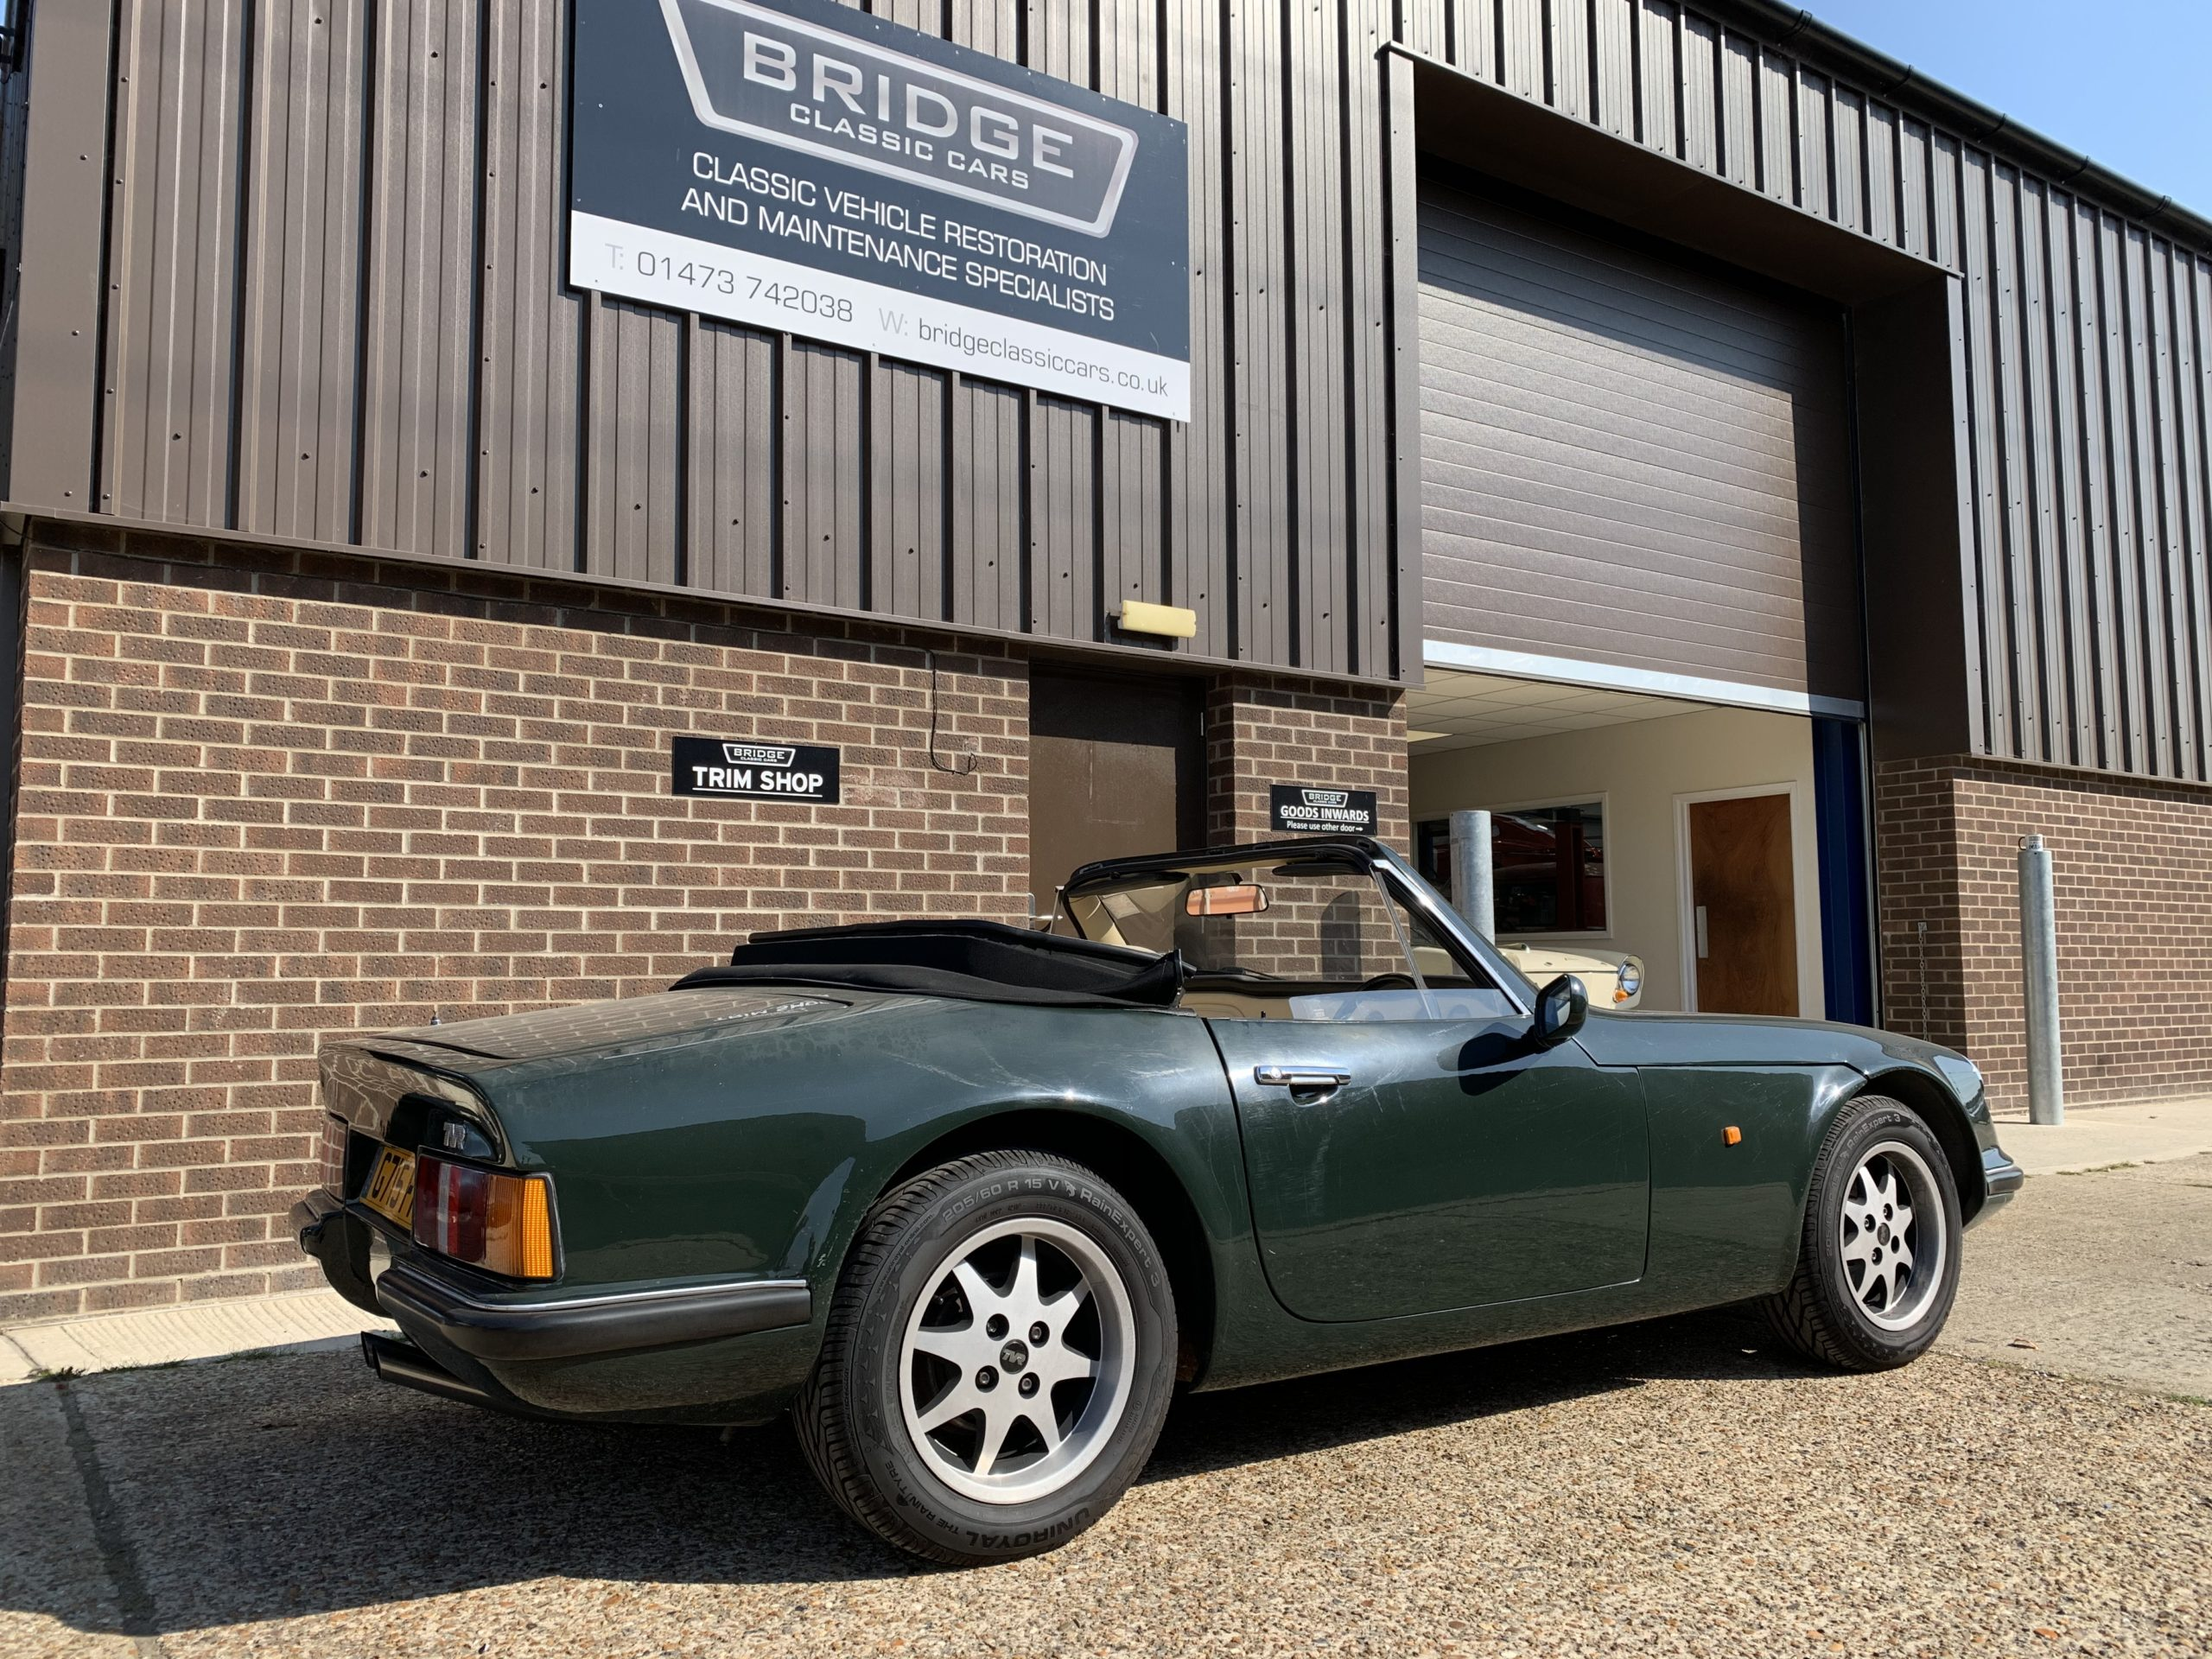 1990 TVR S2